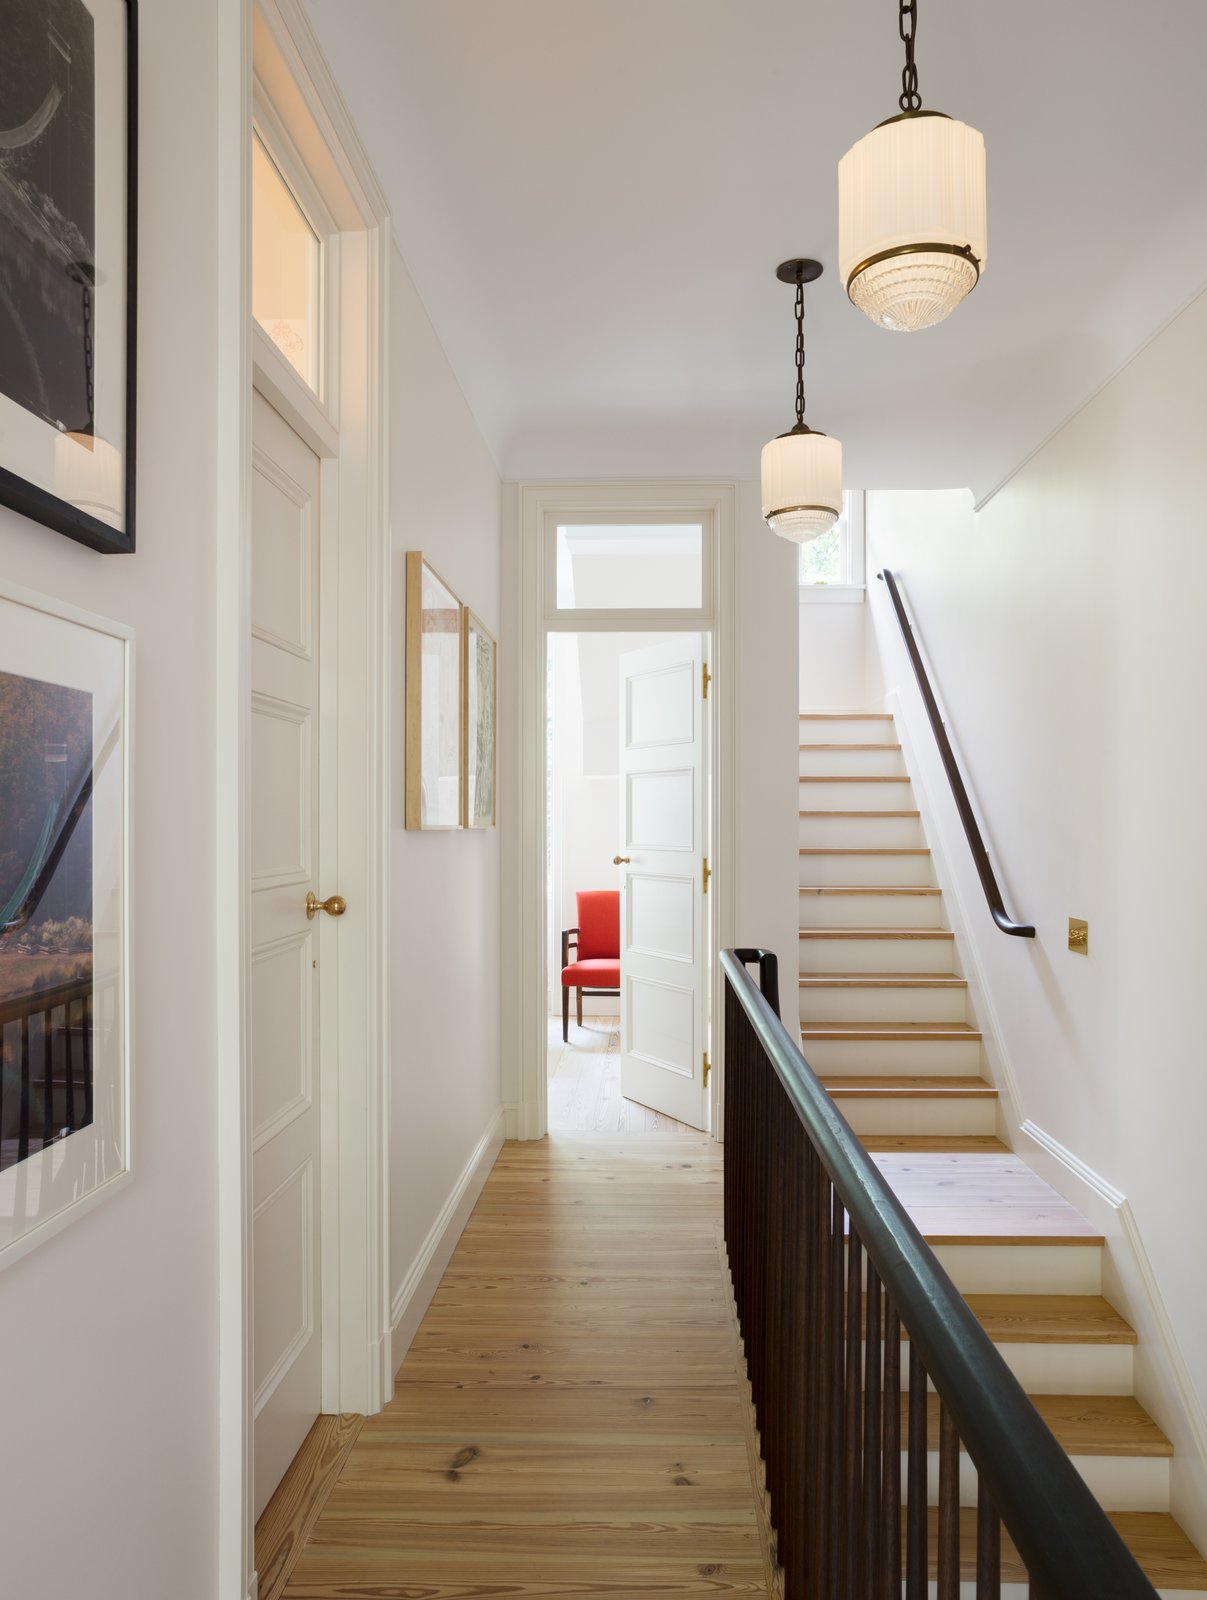 All of the doors in the hallway were salvaged and found by the owners. Yun designed and inserted the glass transom windows above the doors.